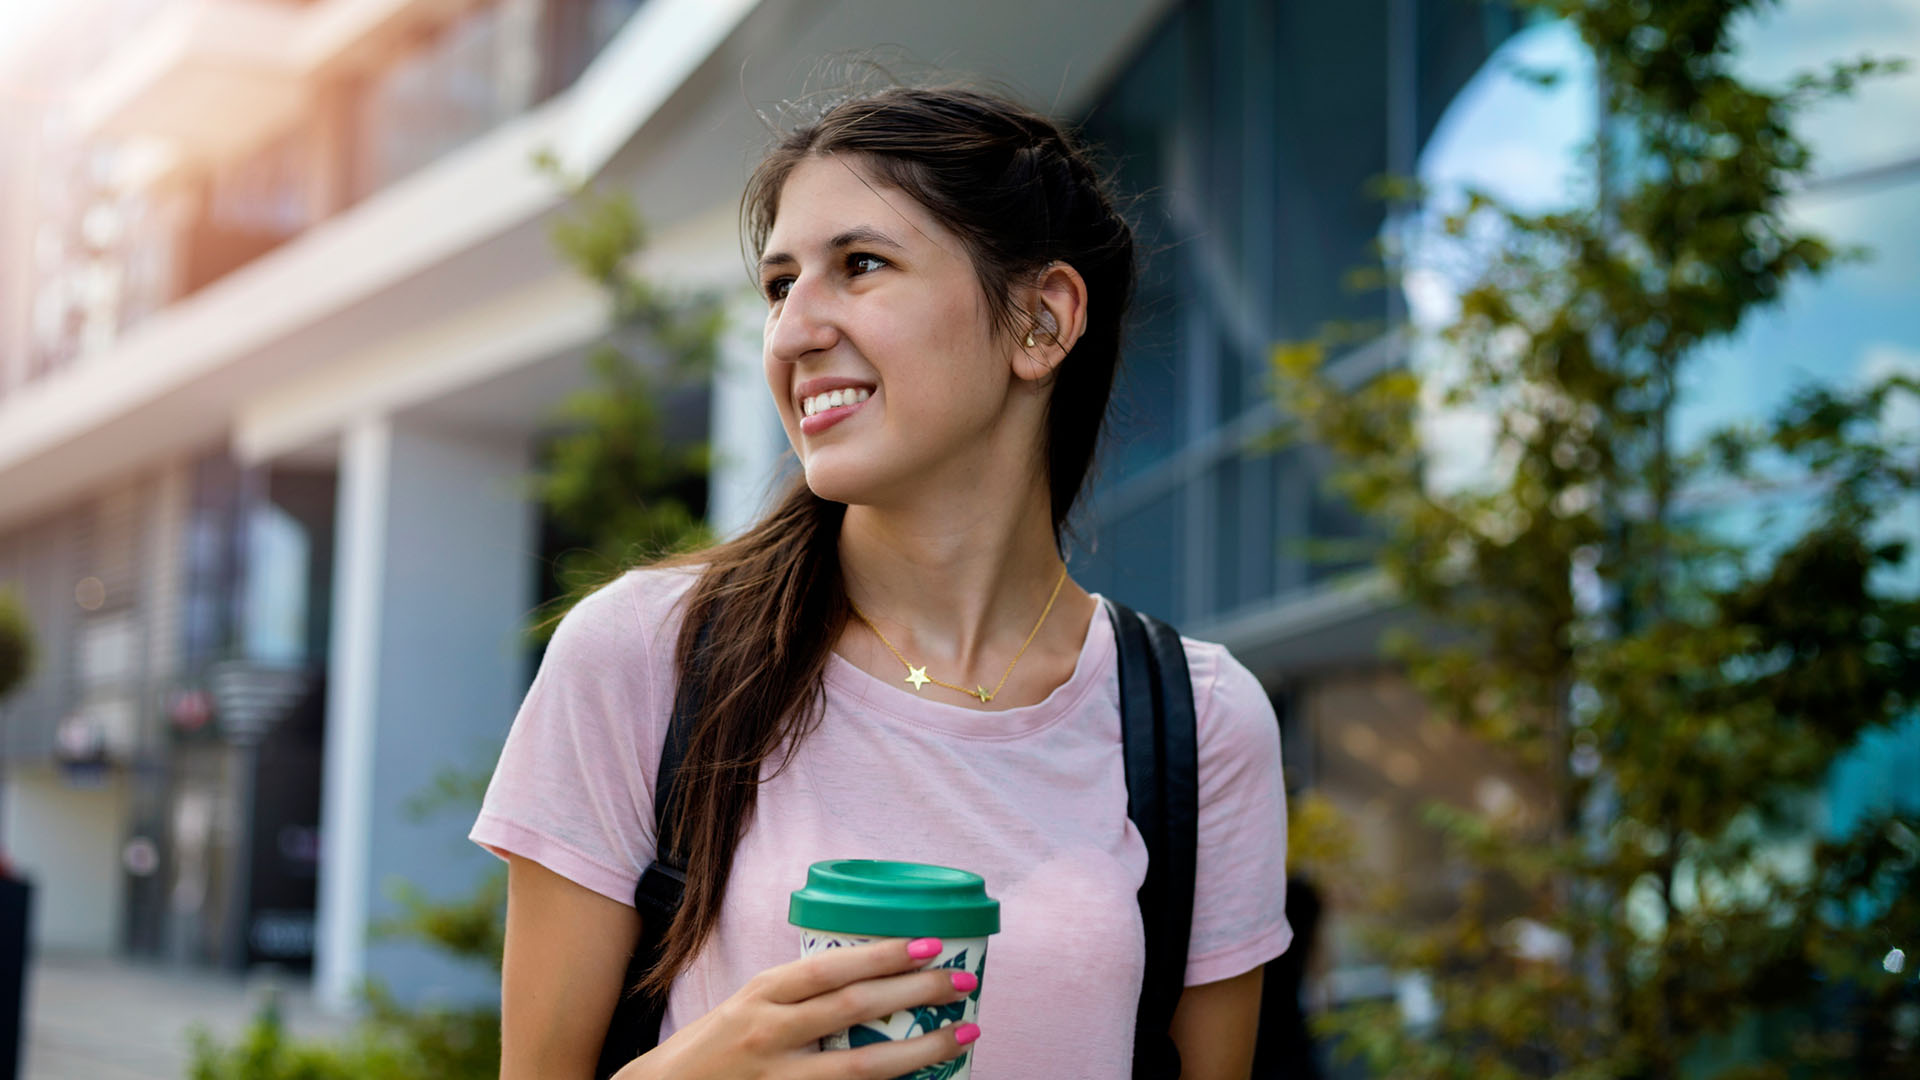 A smiling student walking through campus drinking coffee. She is equipped with a hearing aid.